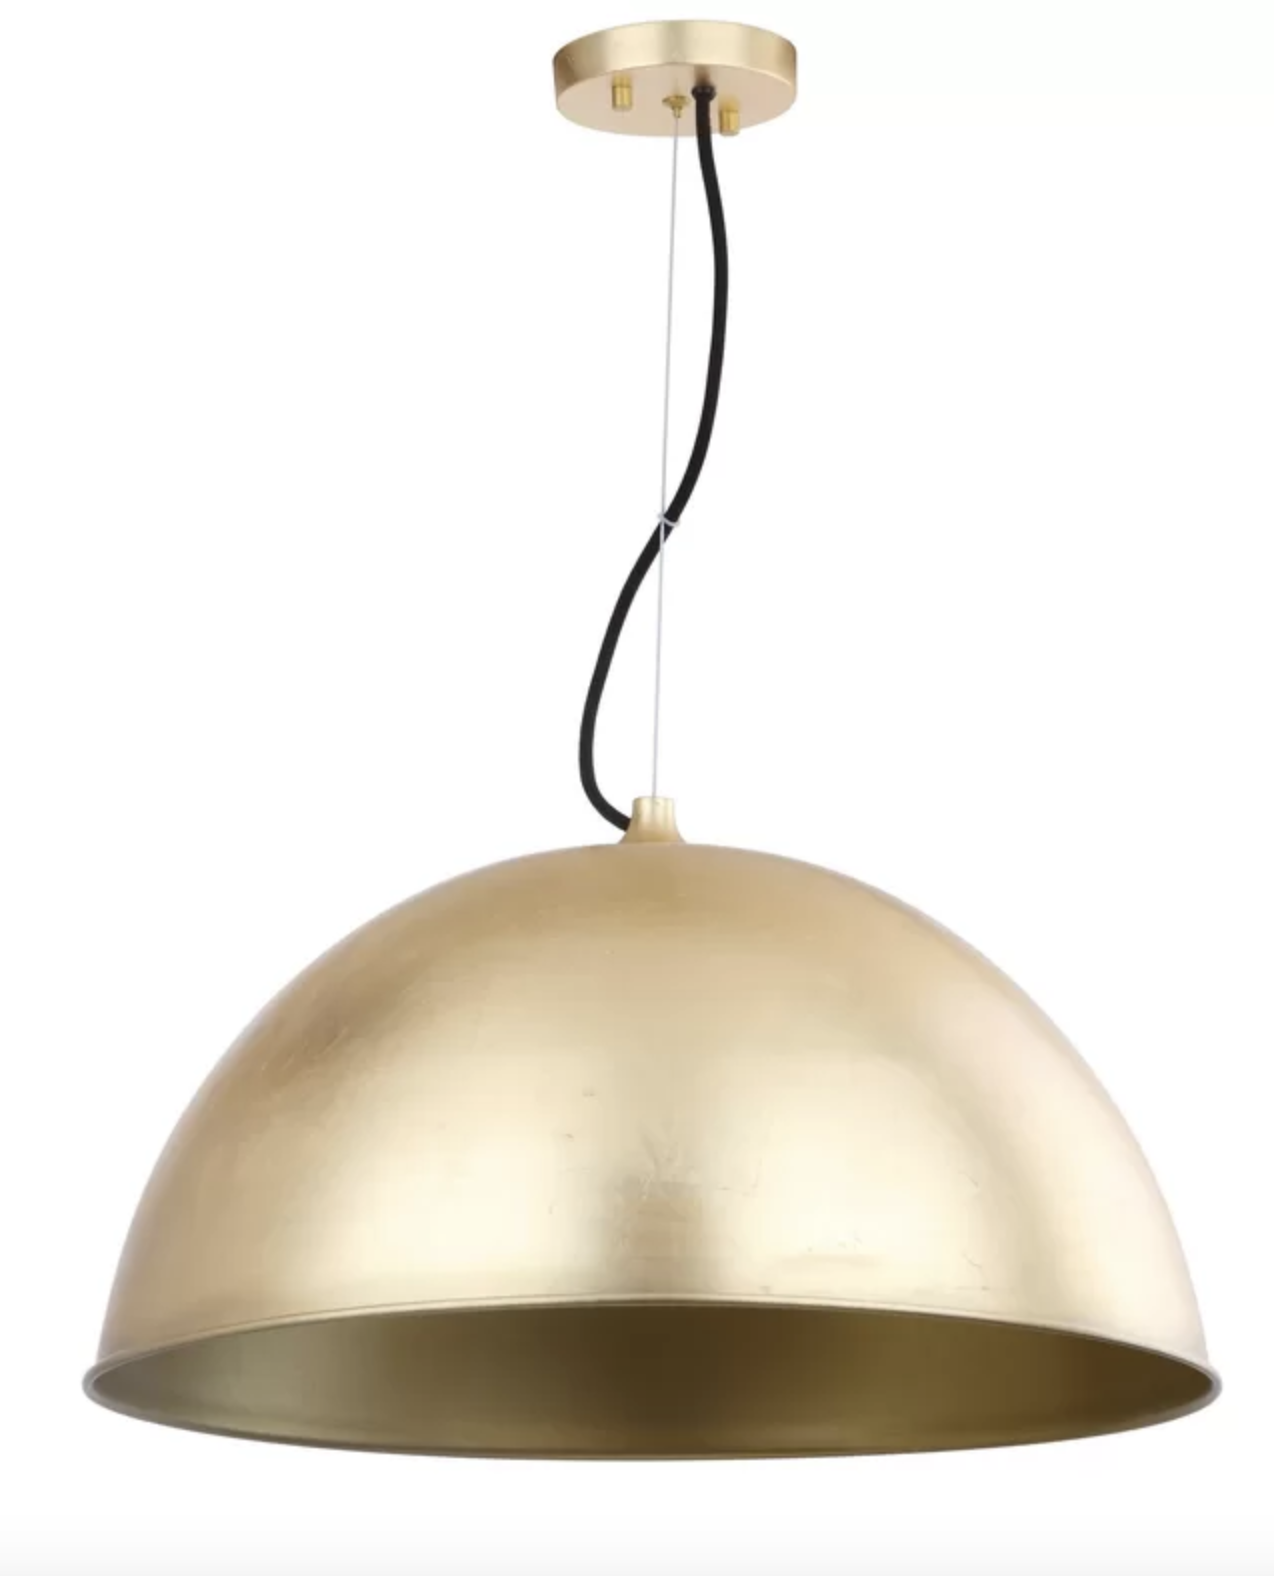 Copy of Copy of All Modern brass pendant